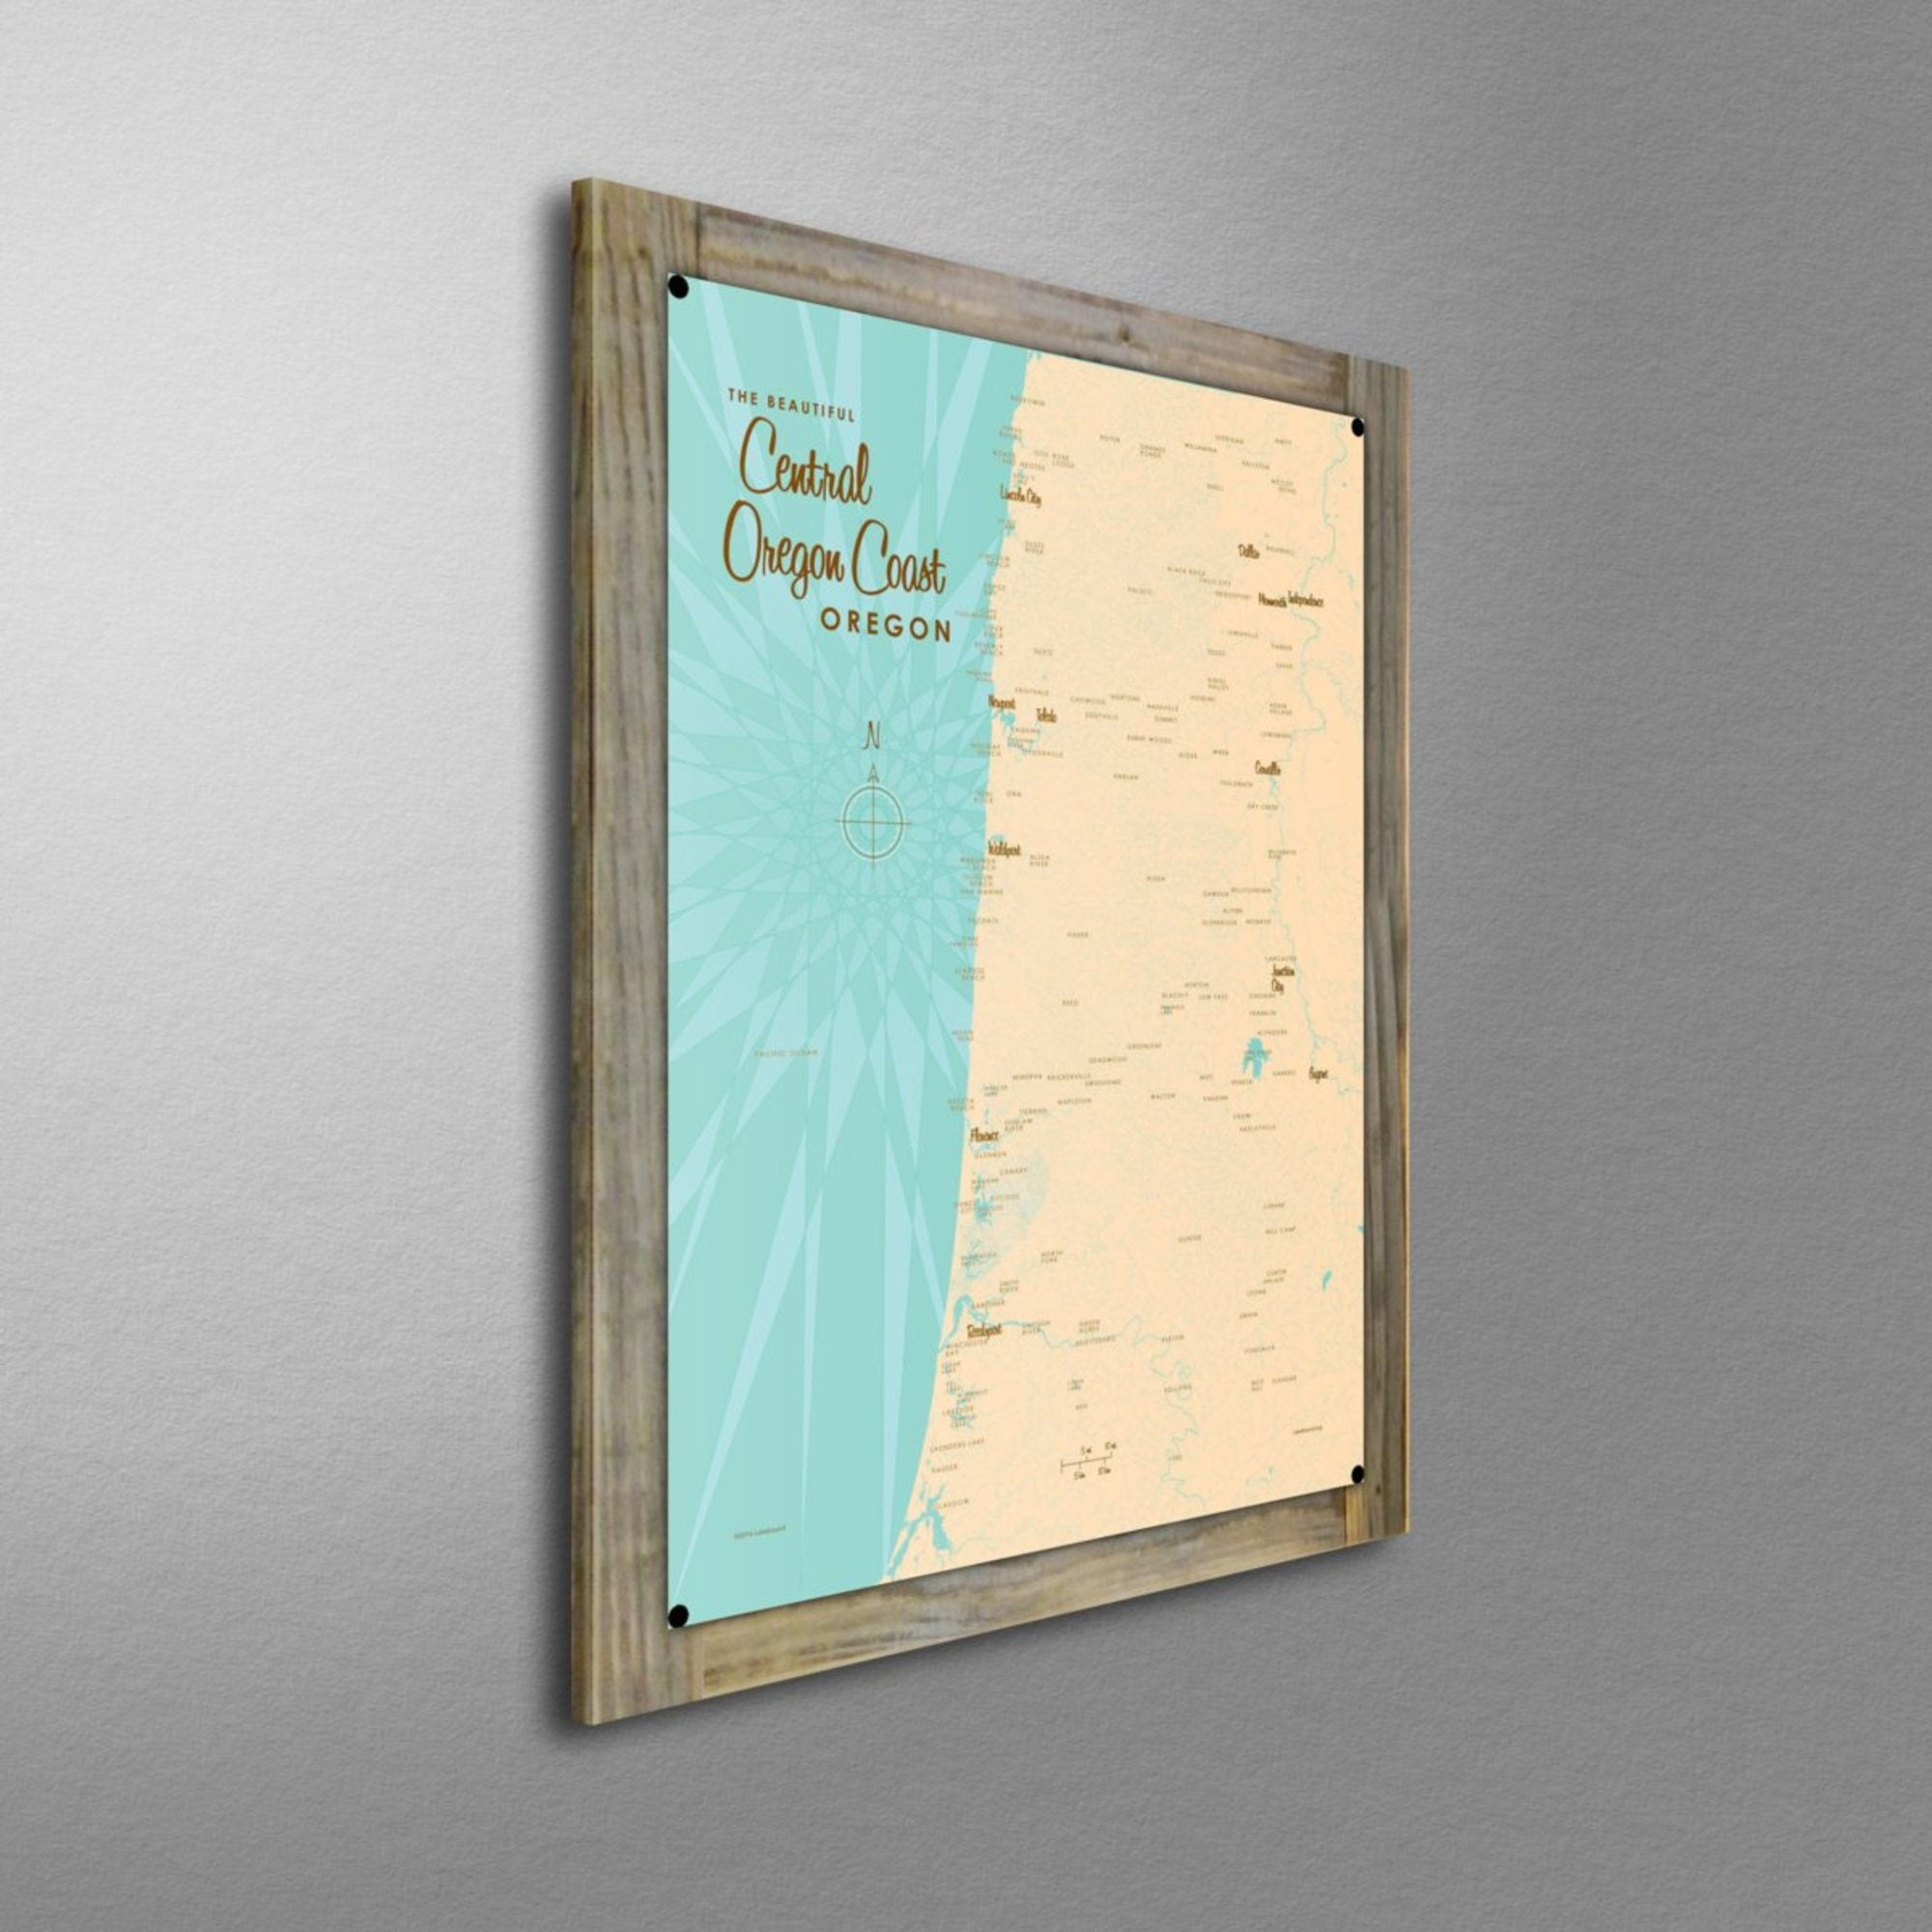 Central Oregon Coast, Wood-Mounted Metal Sign Map Art